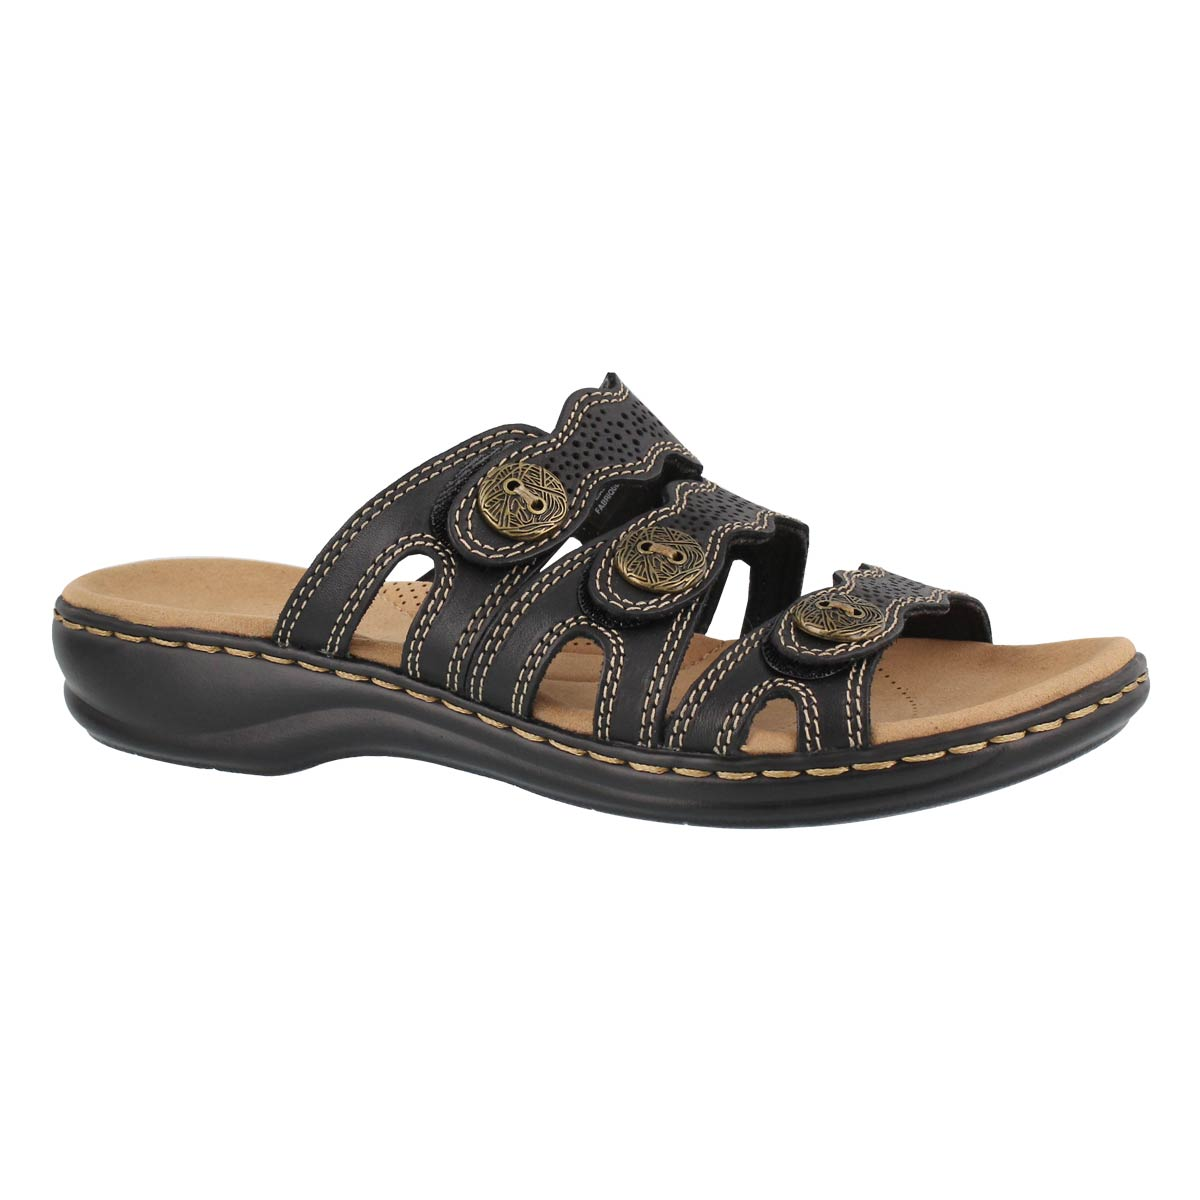 Women's LEISA GRACE sand casual sandal